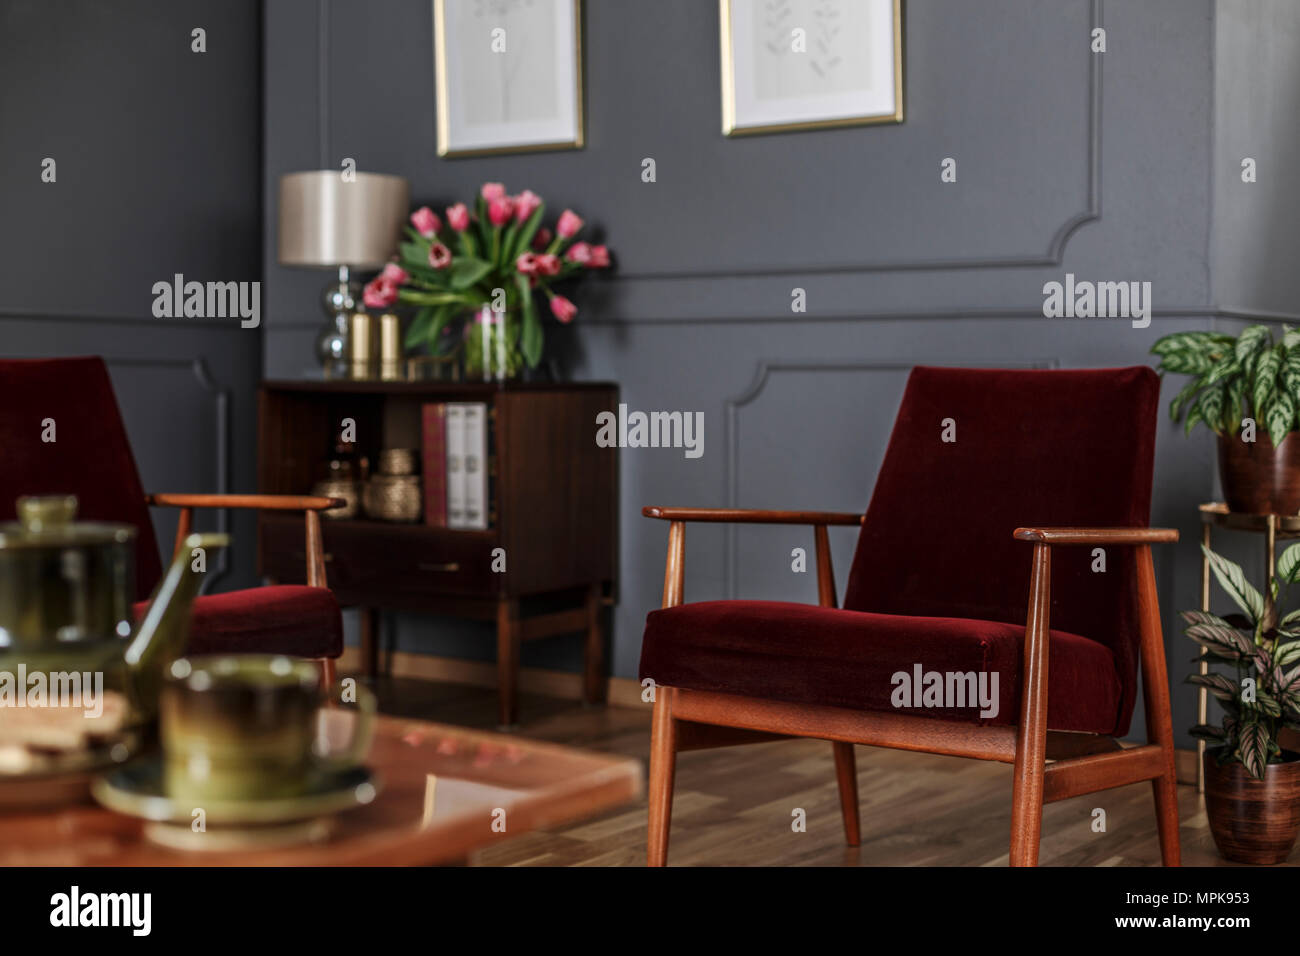 Close Up Of A Red Velvet Armchair Standing In A Blurred Interior Of A Dark Living Room With Wooden Furniture And Molding On The Gray Walls Real Phot Stock Photo Alamy